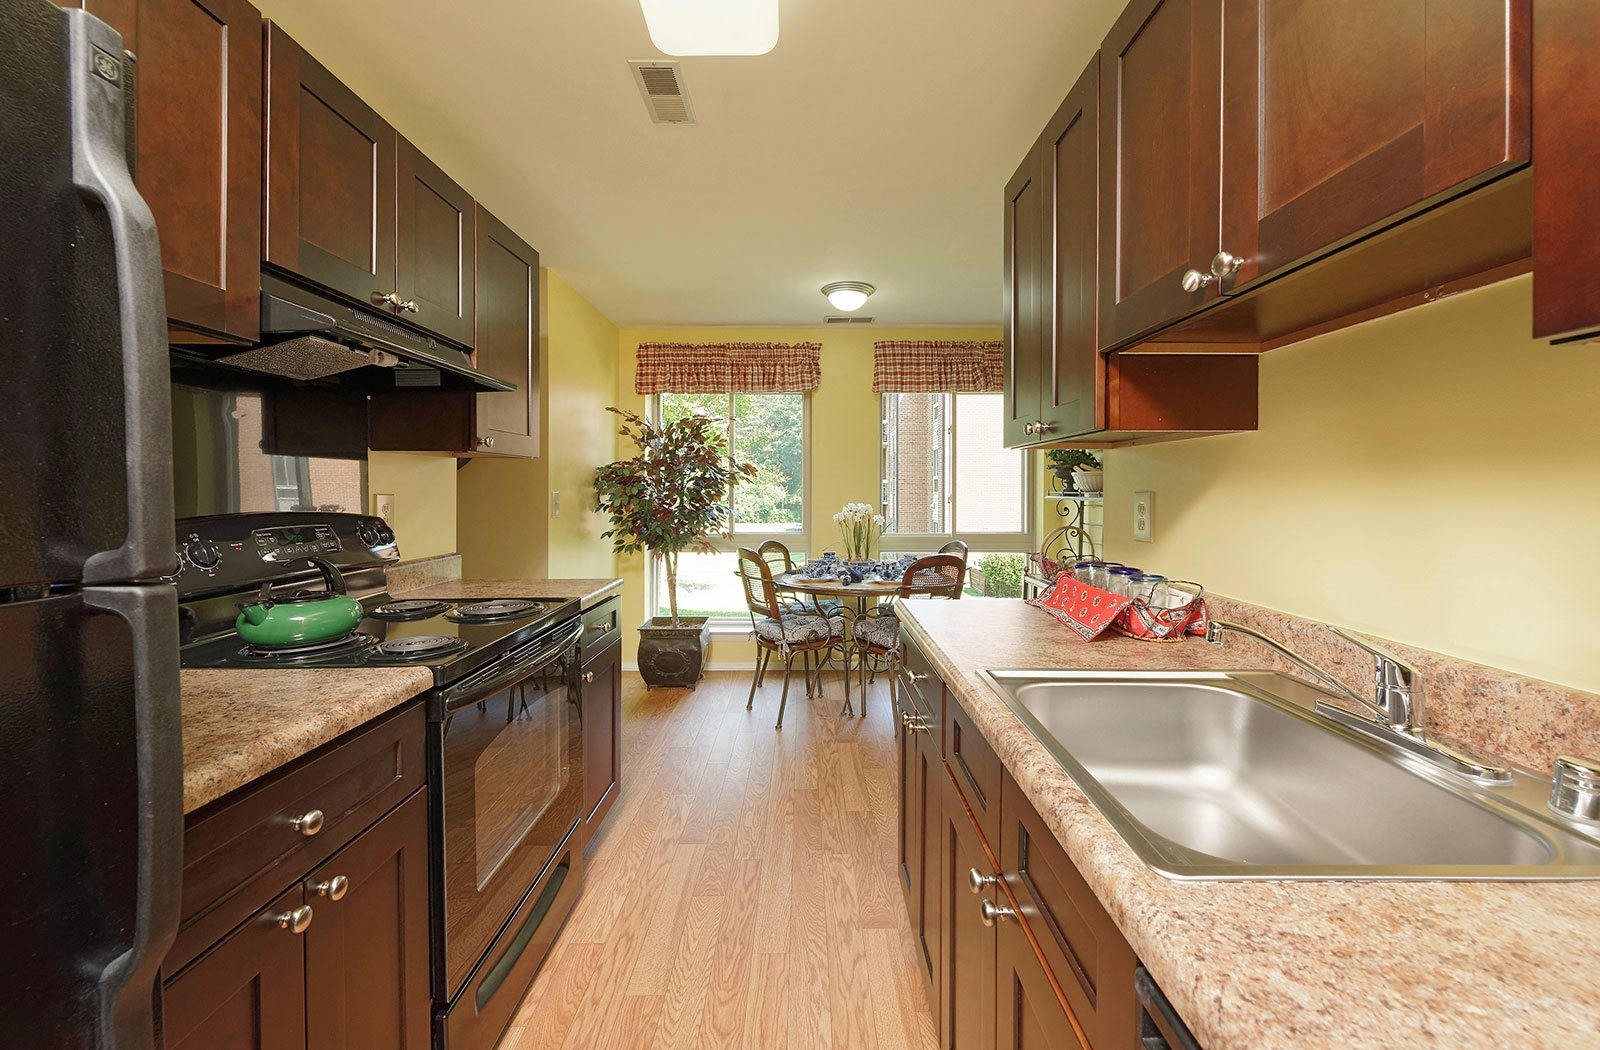 Kitchen Westwinds, 1029 Spa Road,  Annapolis